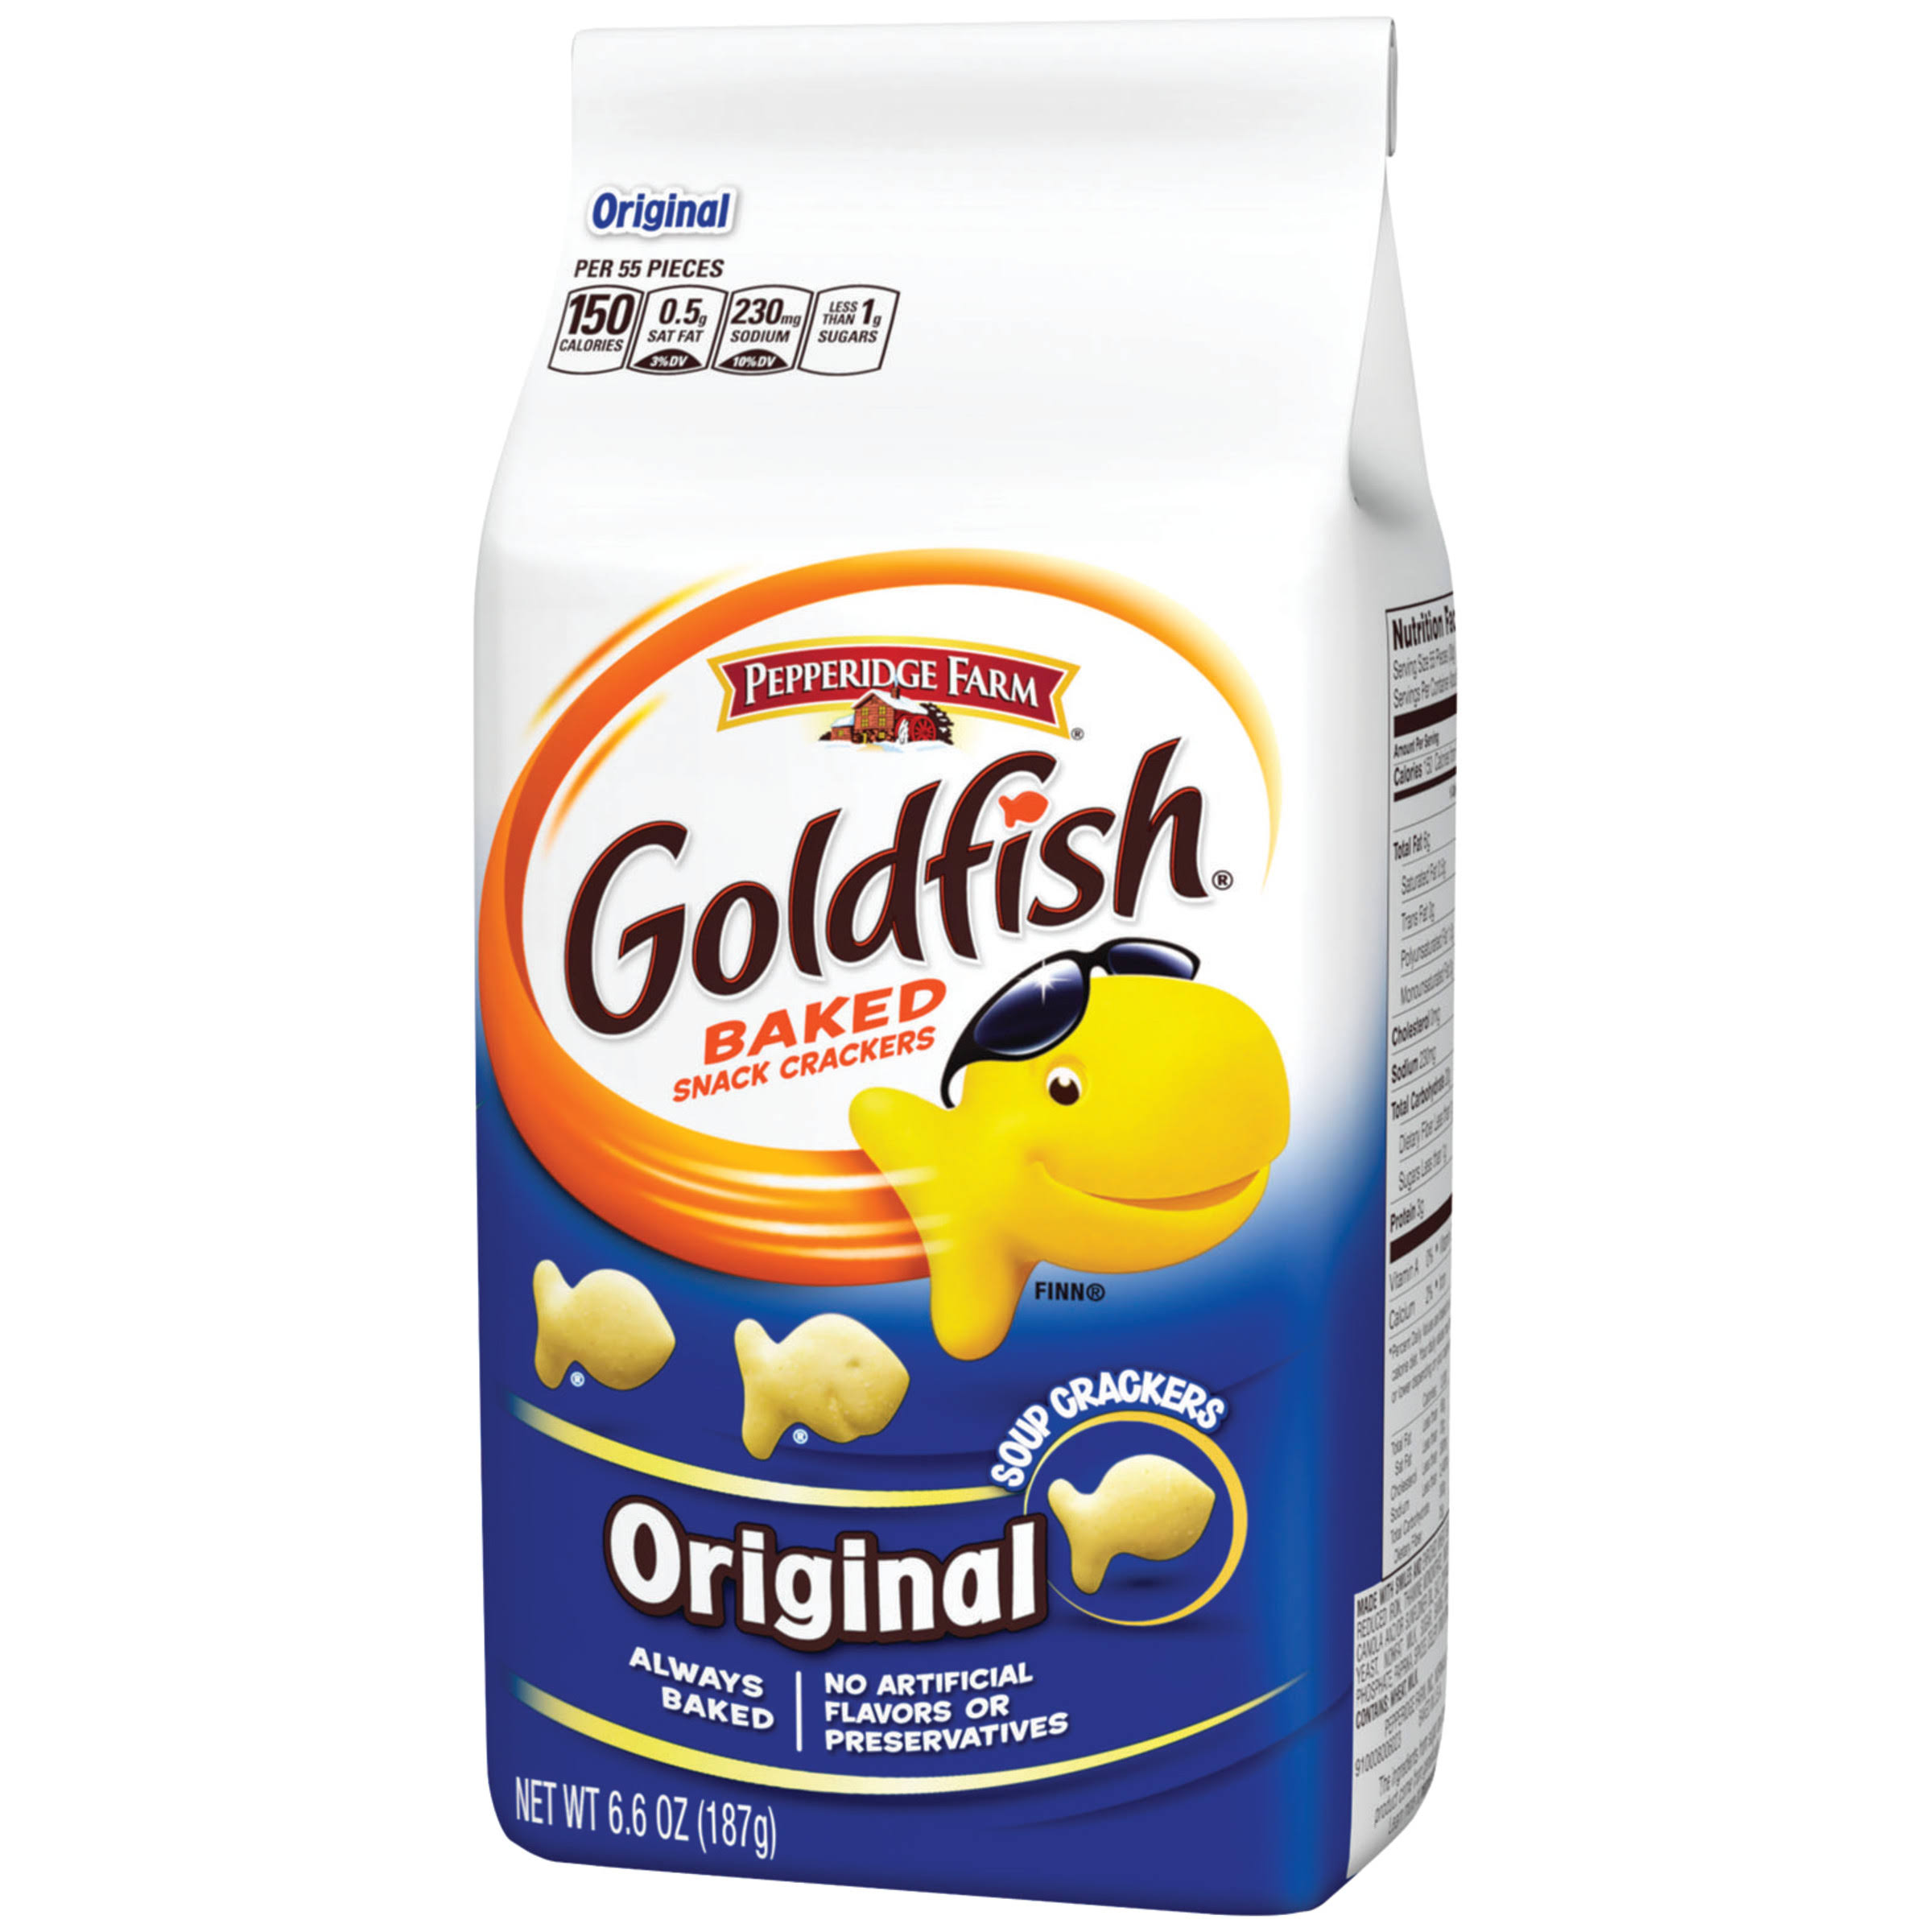 Pepperidge Farm Goldfish Original Baked Snack Crackers - 6.6oz